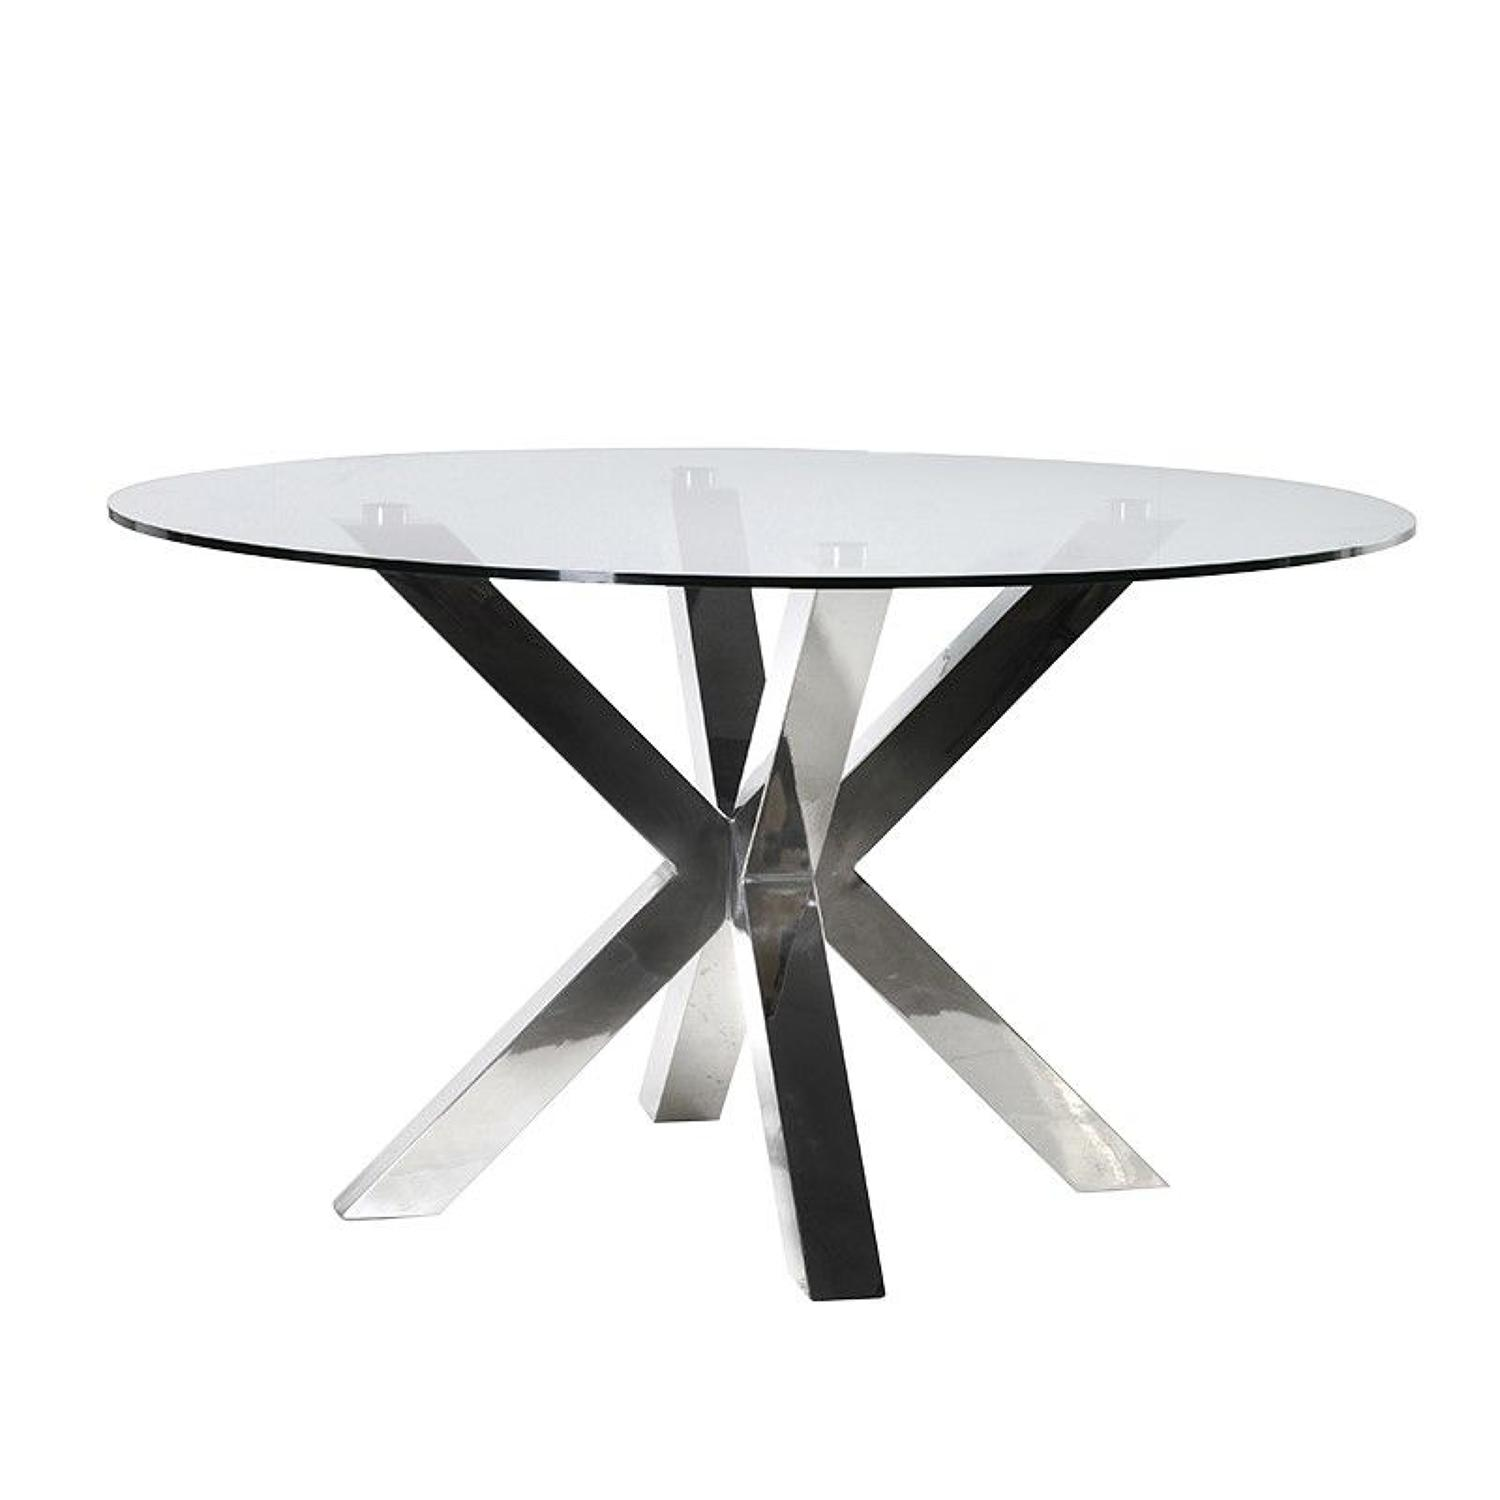 Round dining table with steel frame and glass top